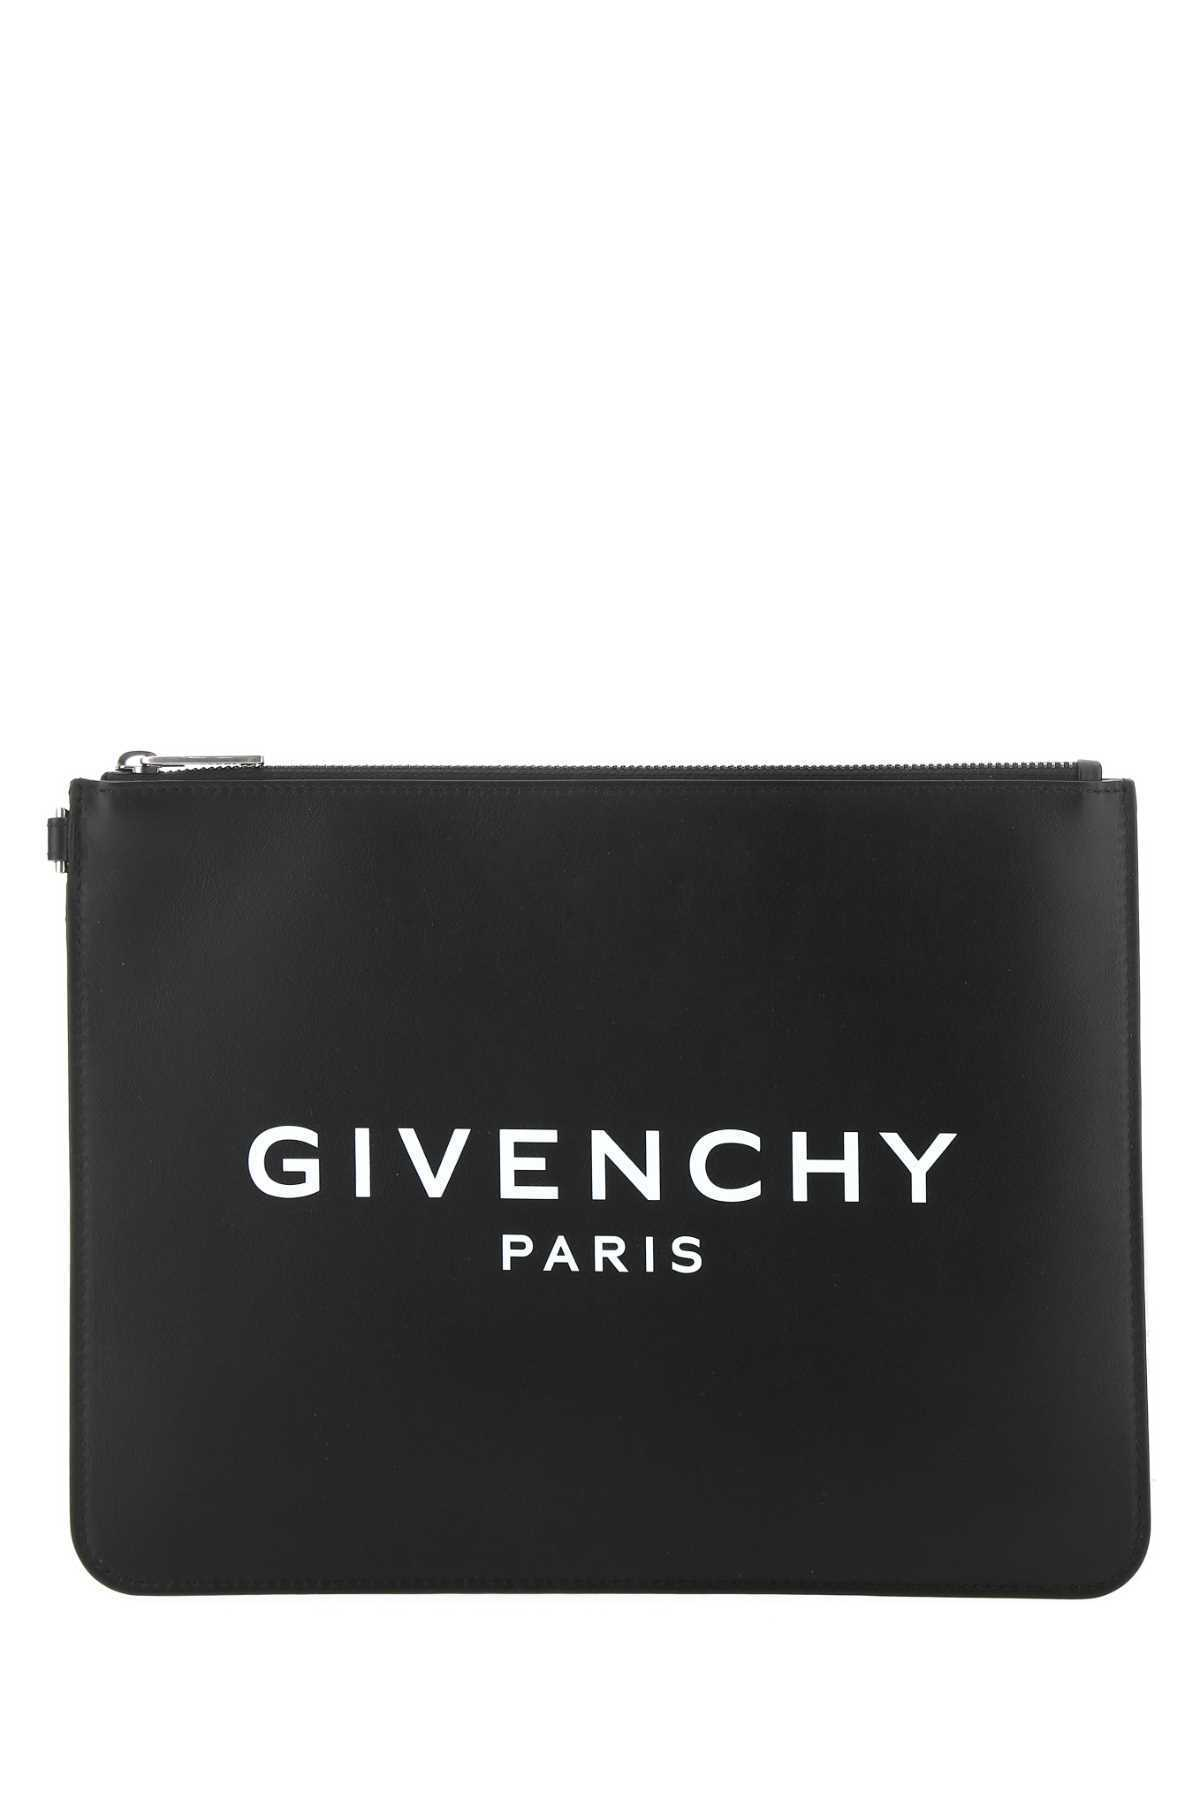 GIVENCHY POUCH (BK600JK0AC 001) (GIVENCHY/ファッション雑貨・小物その他) 64582615